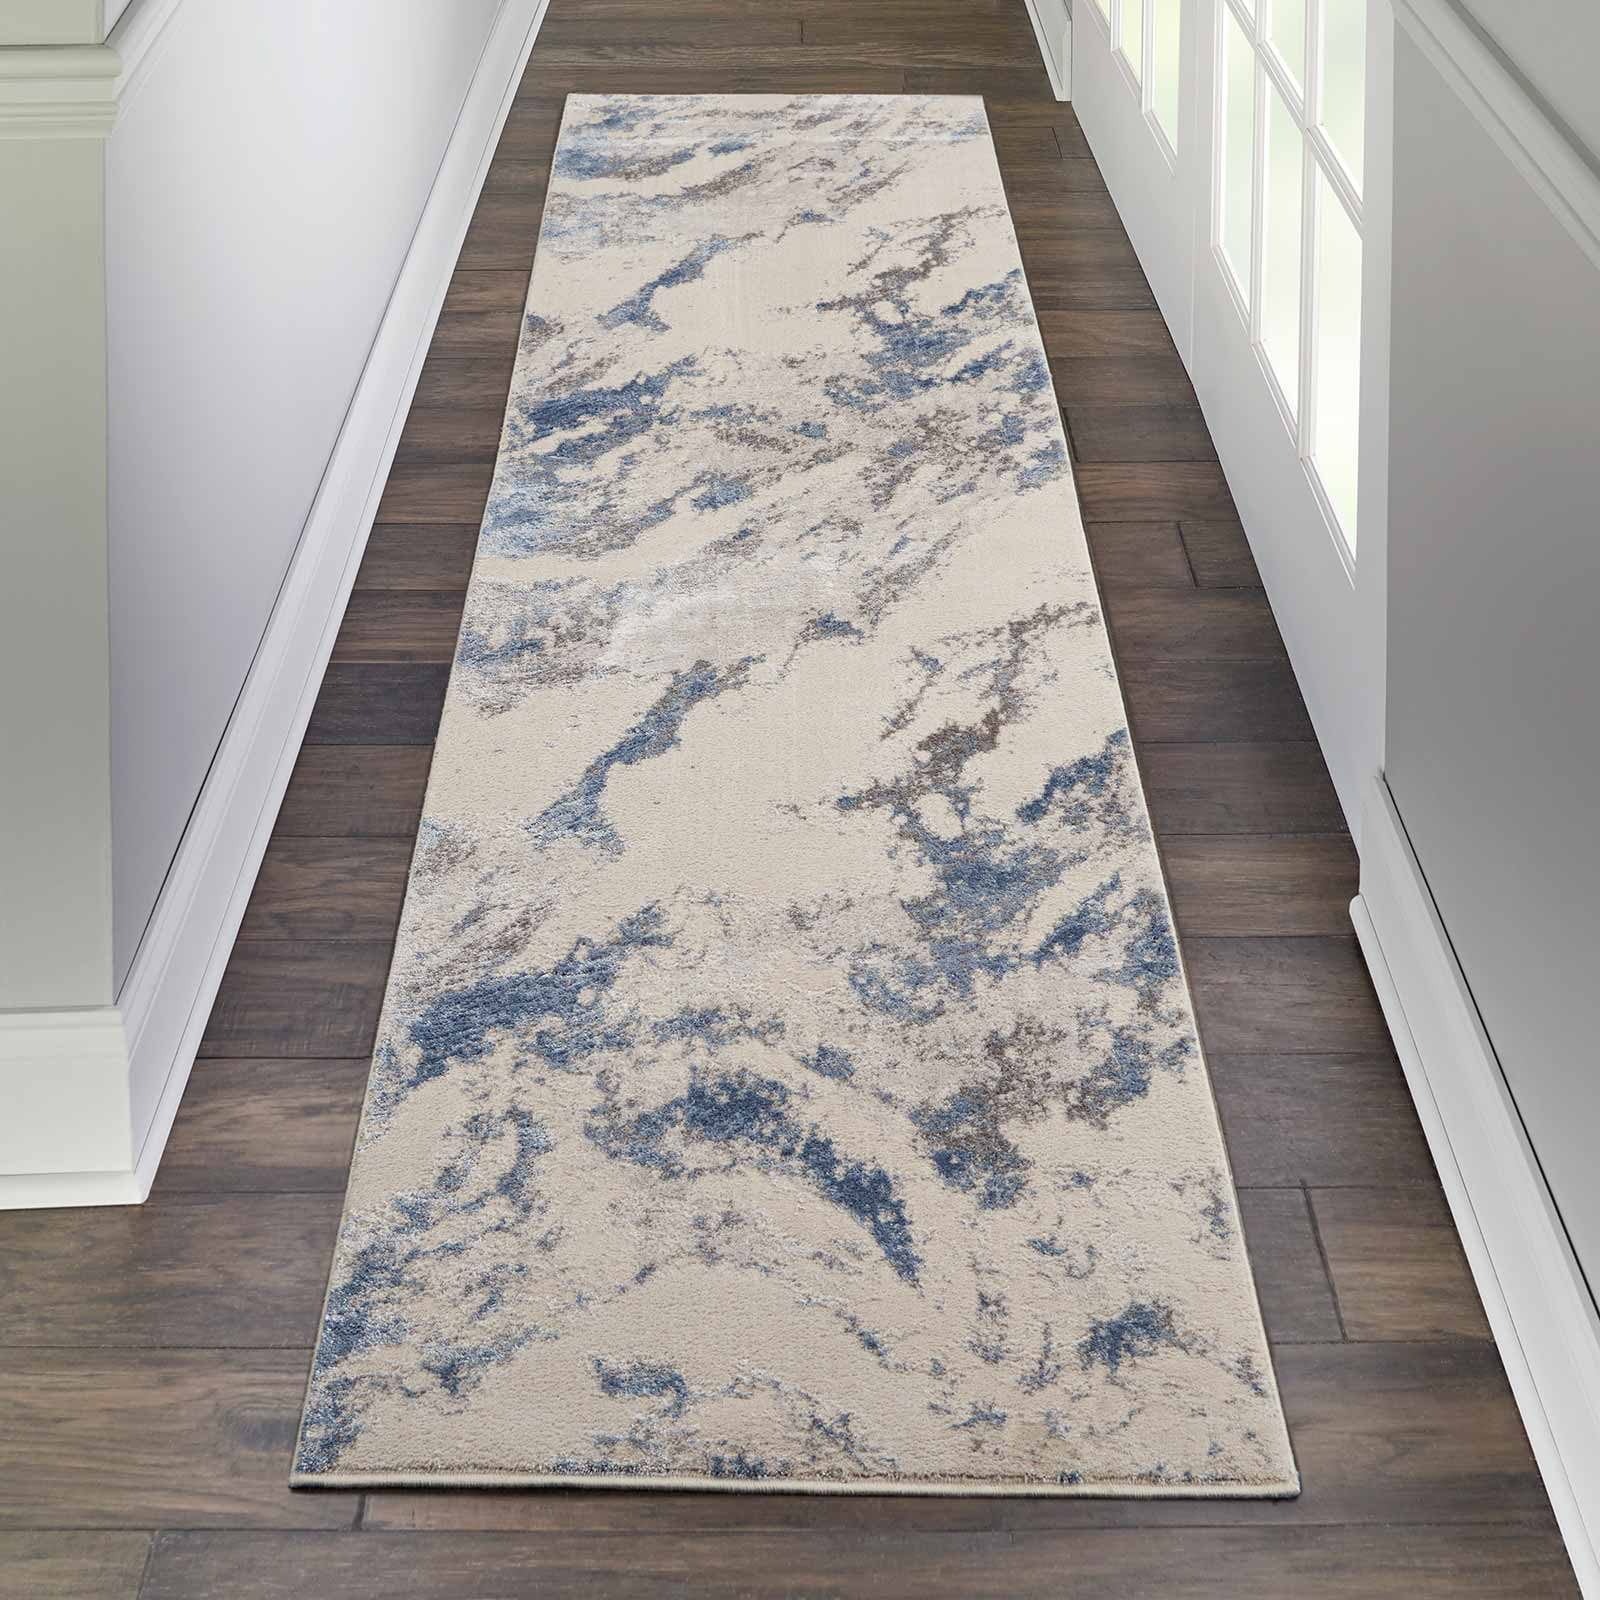 Nourison rug Silky Textures SLY03 BLUE IVORY GREY 2x8 099446710031 interior 1